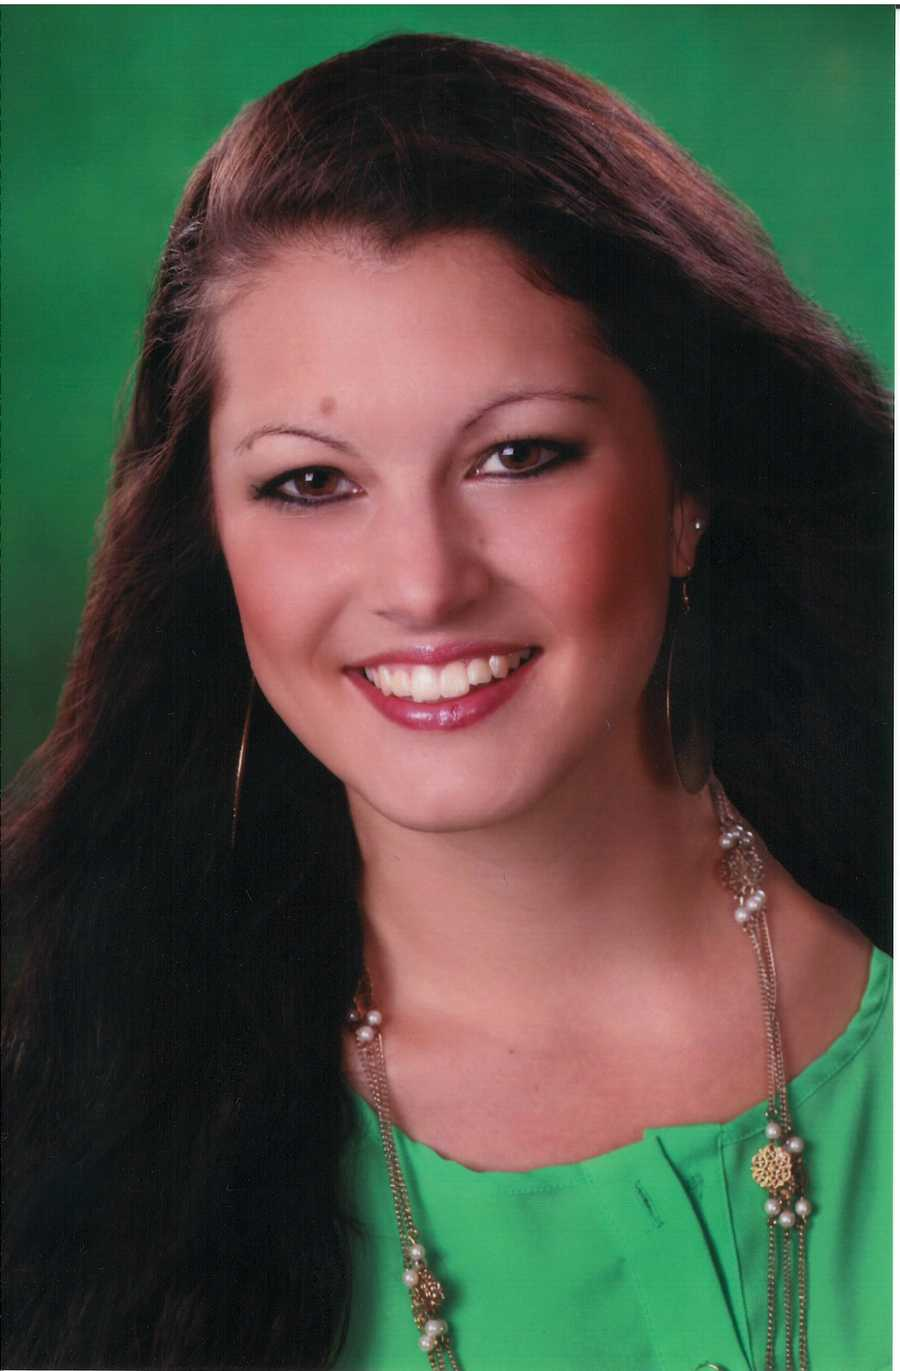 Kaytie Riley, 22, Miss Mason DixonLittle Swimmers Early Education AwarenessVocal/Piano